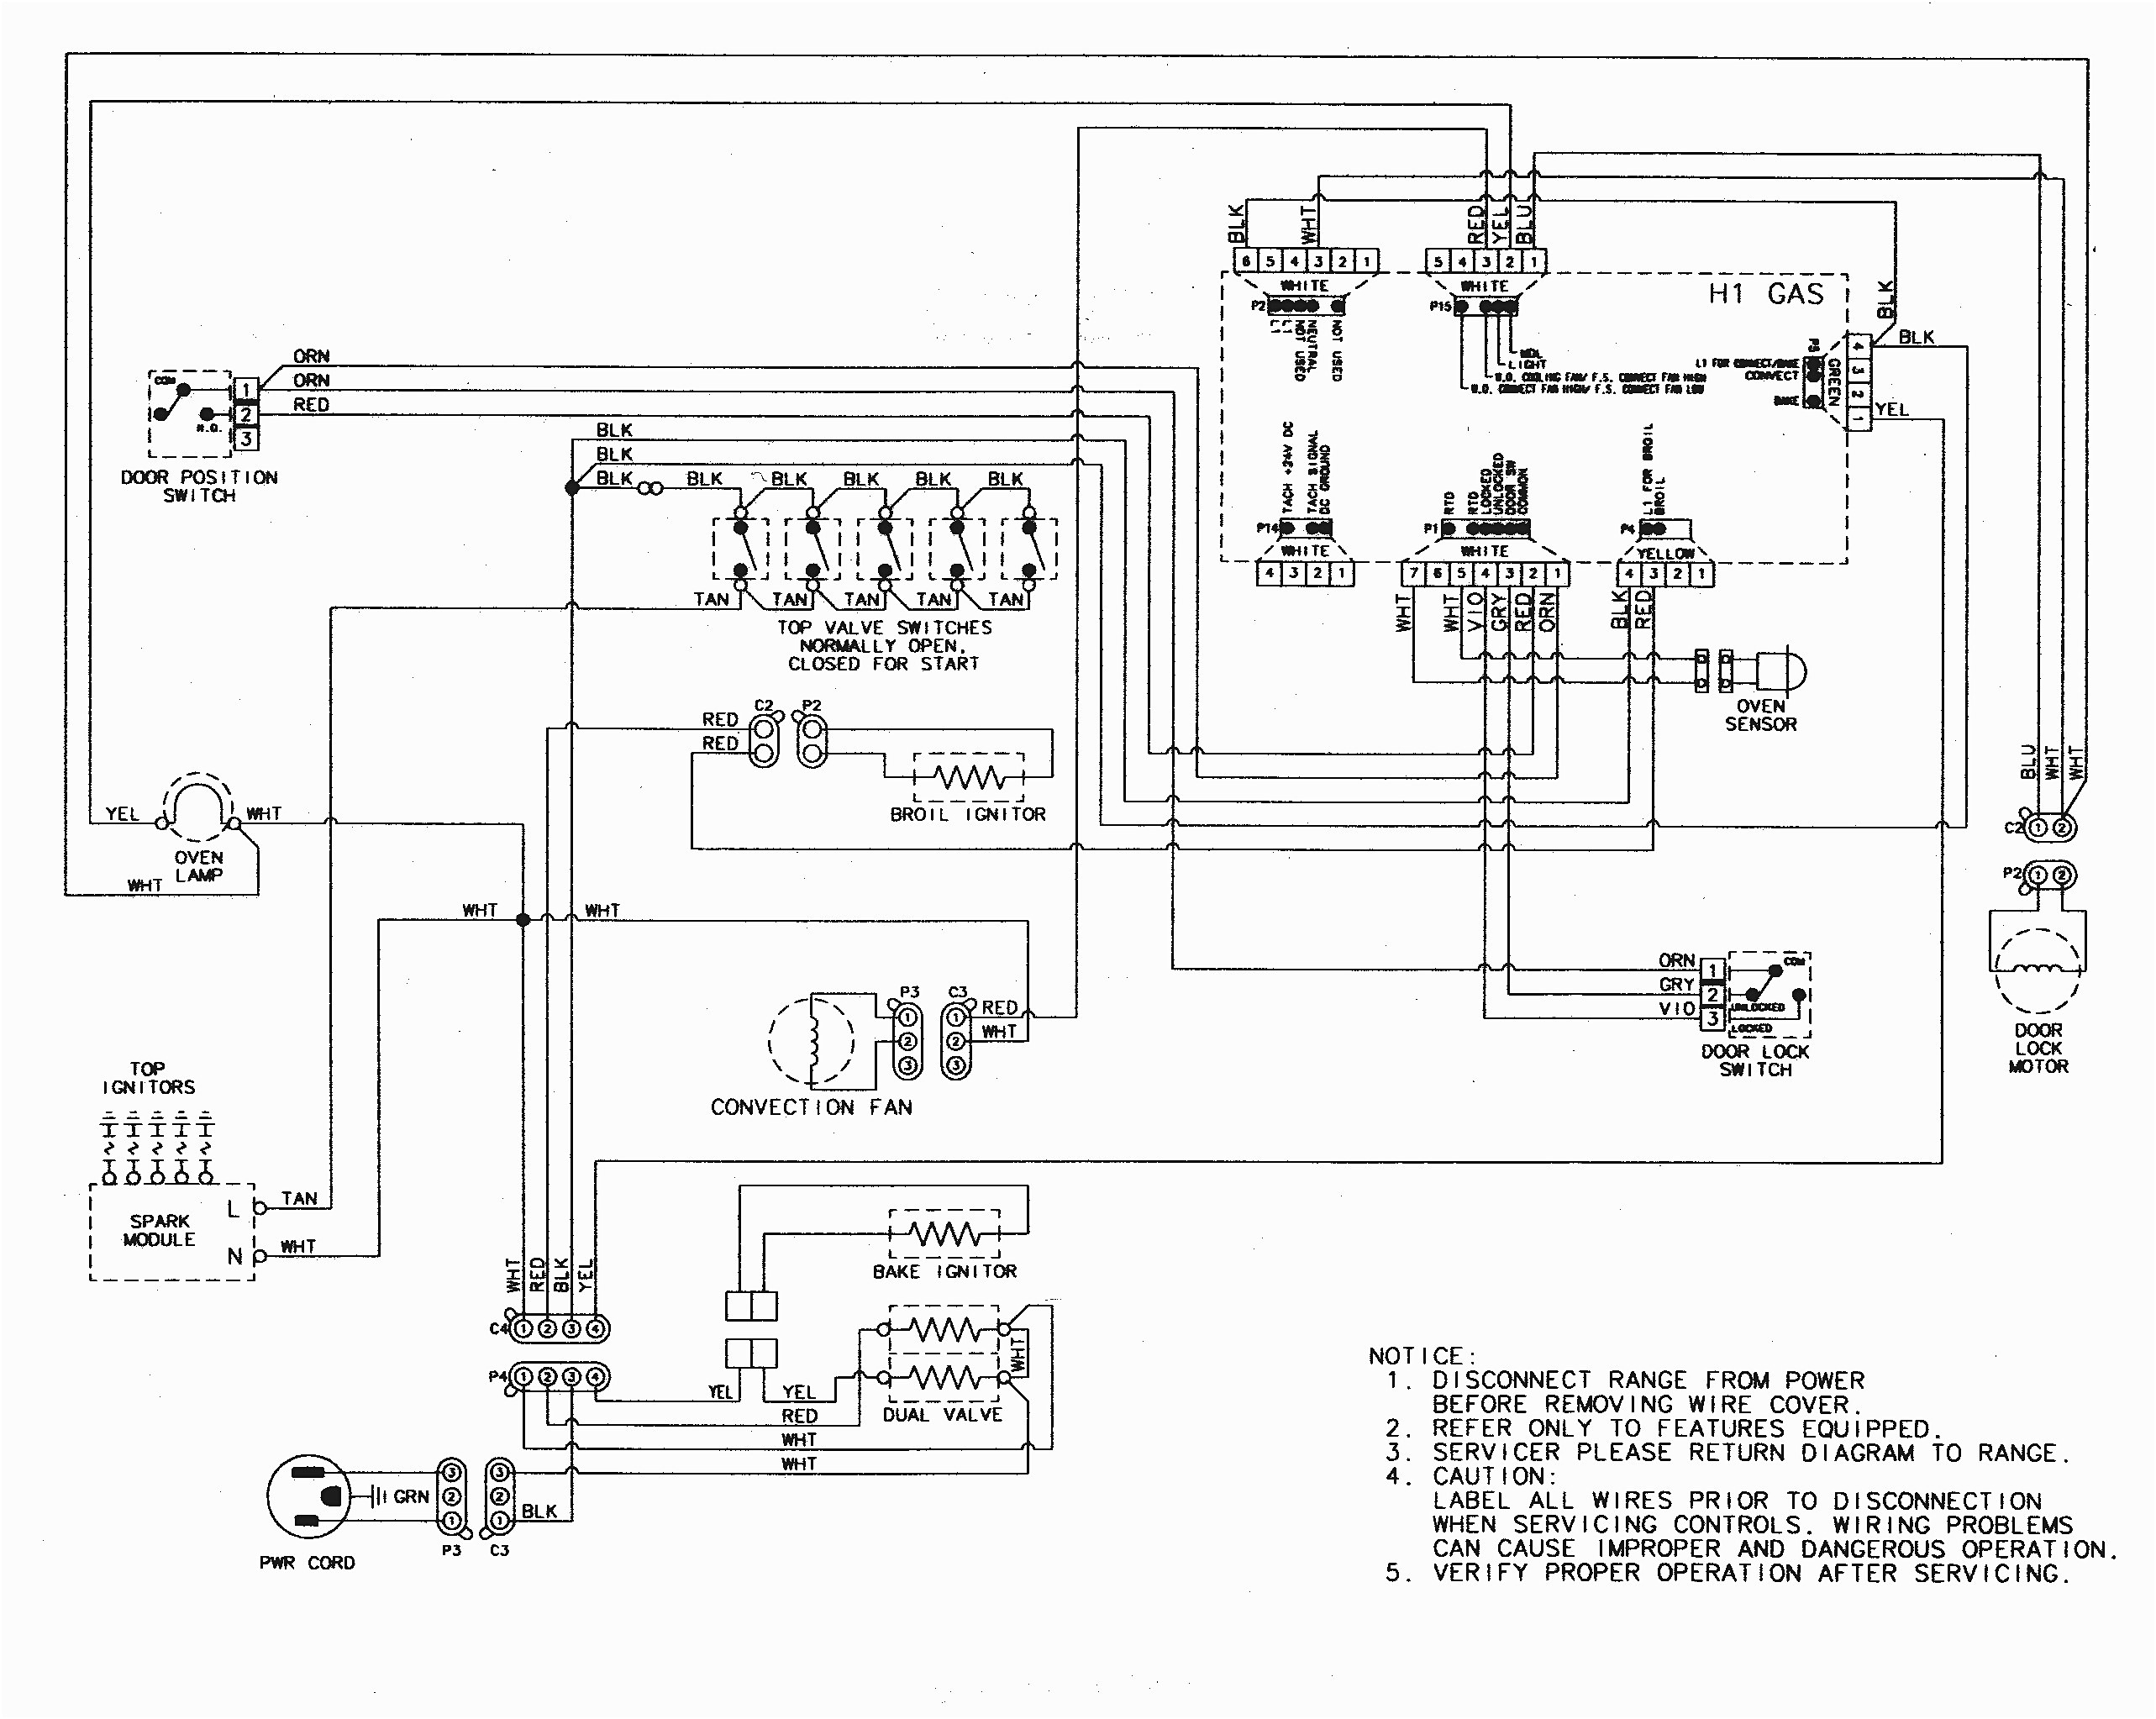 240v stove wiring diagram free download schematic wiring diagram blog240v oven wiring diagram auto diagram database